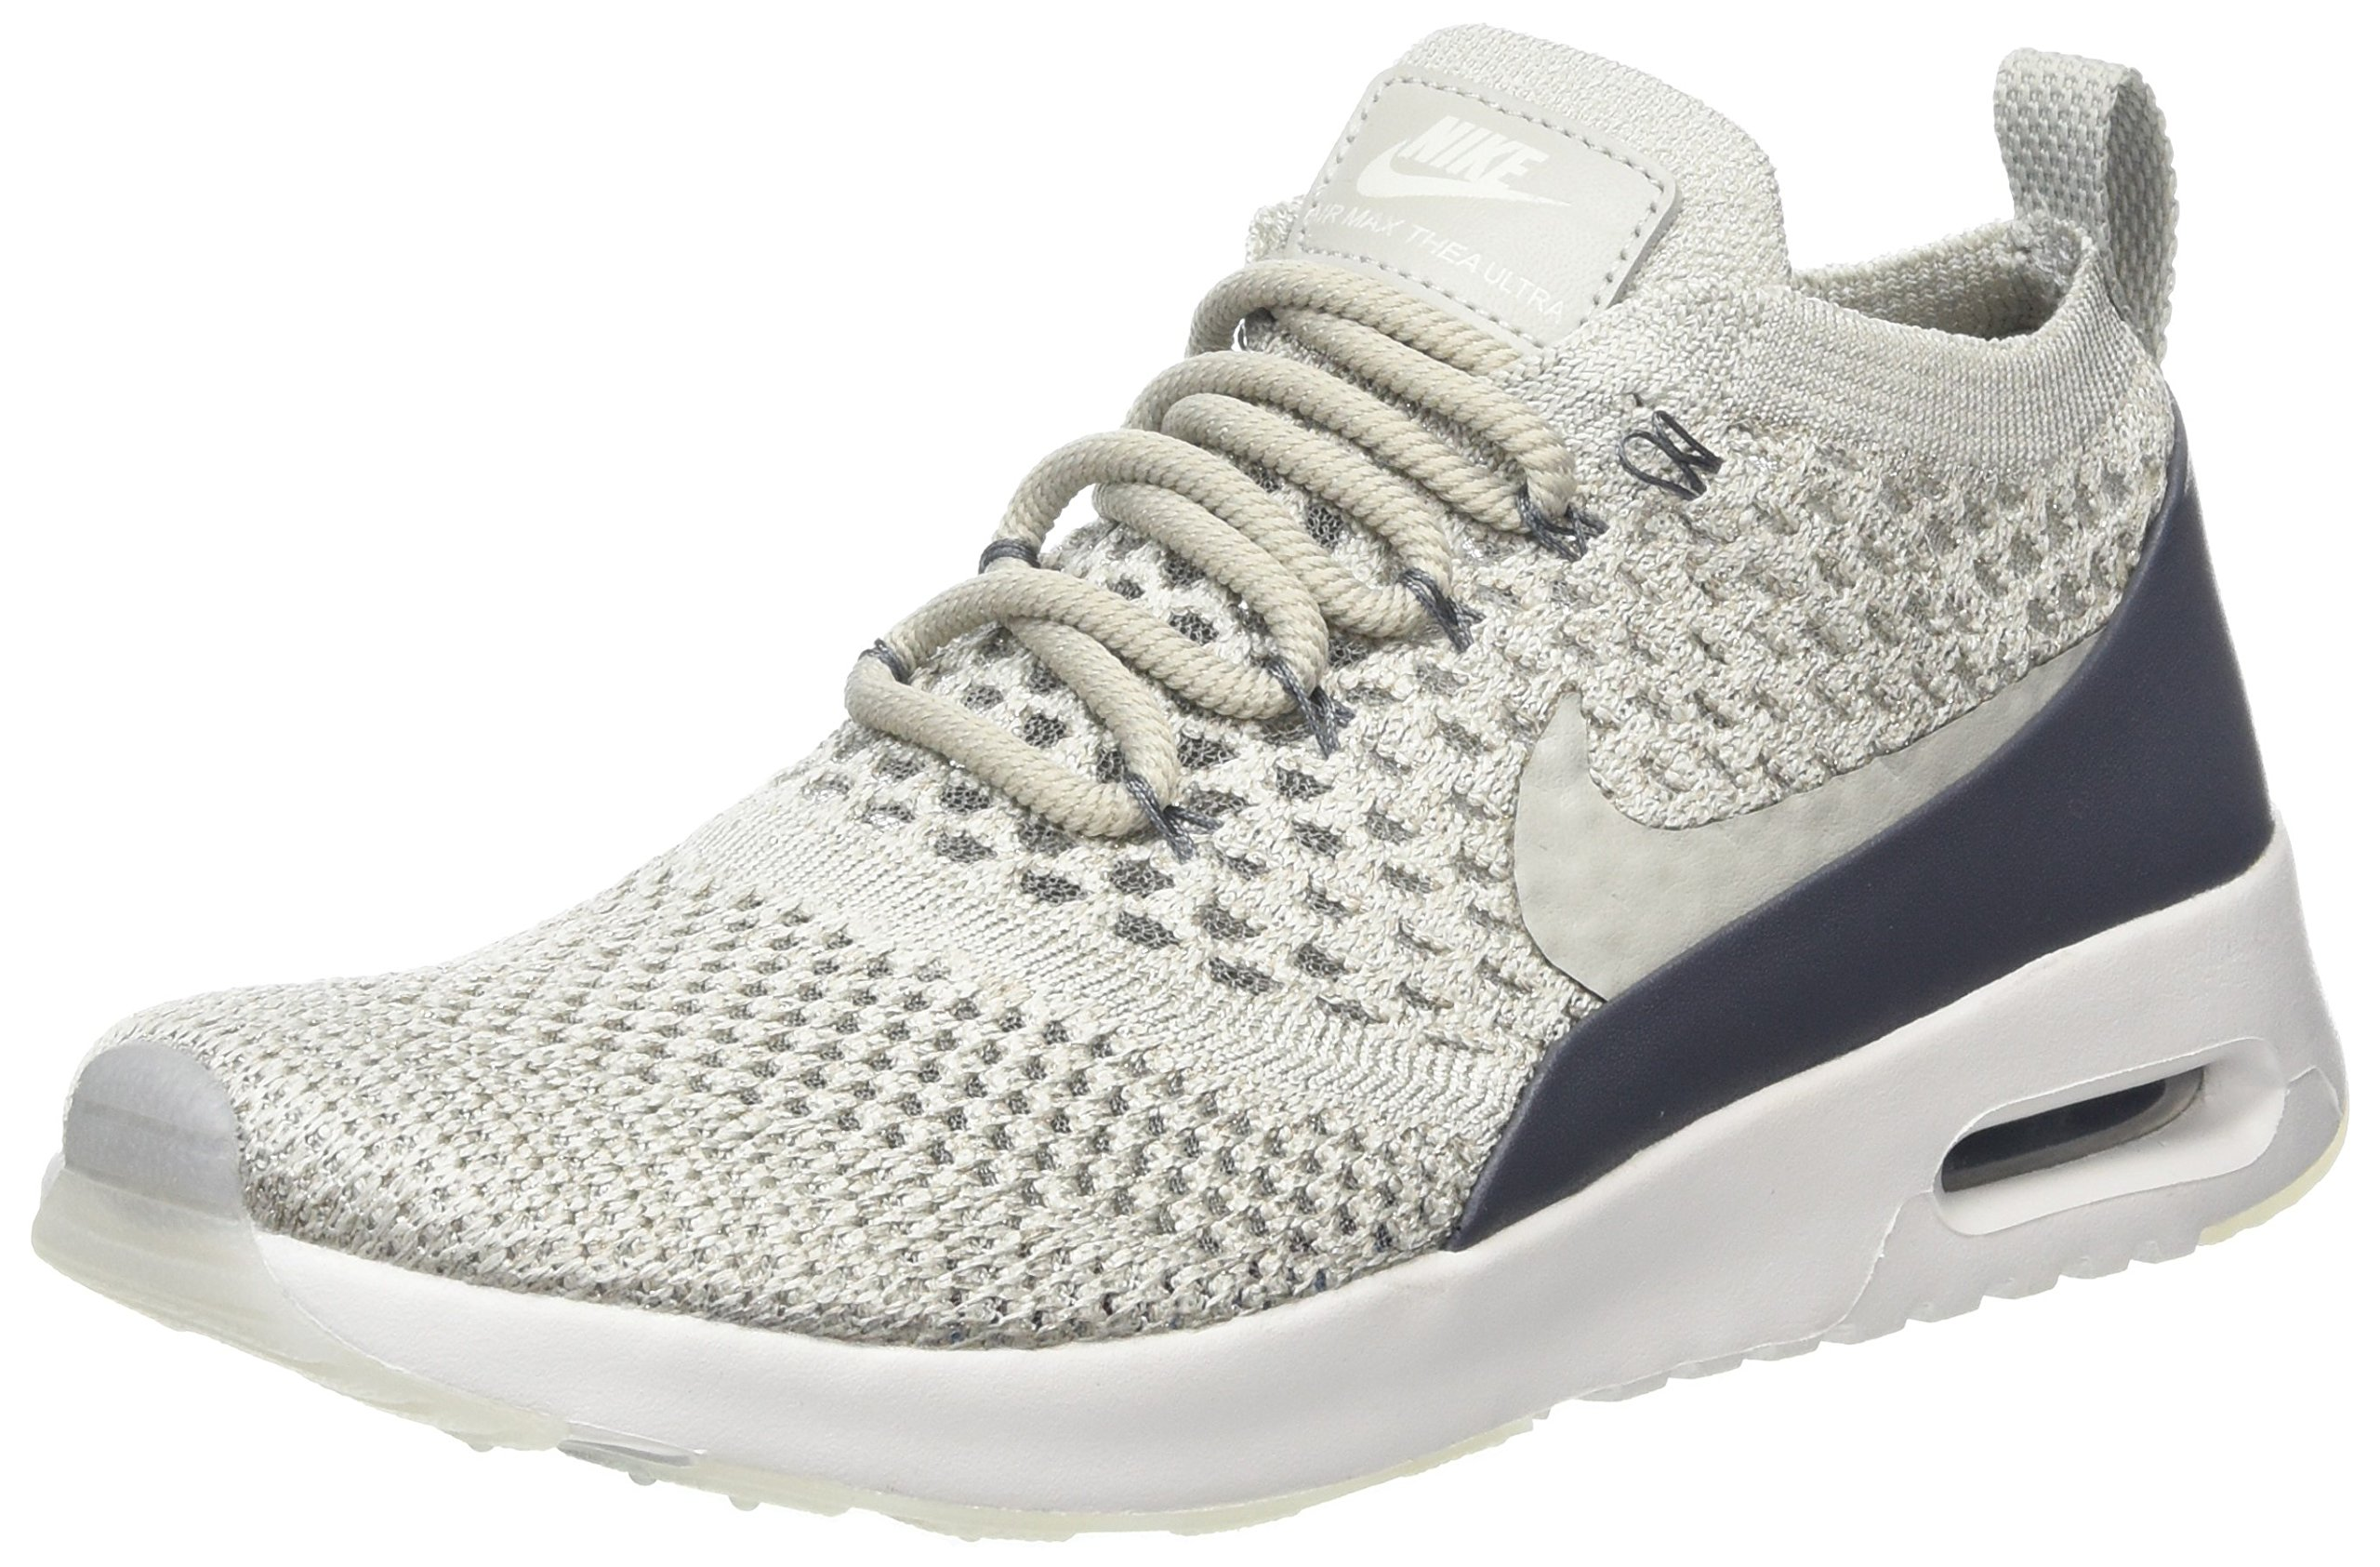 Nike Women's Air Max Thea Ultra Flyknit Trainers, Grey (Pale GeryPale Grey Dark Grey), 3 UK 36 EU